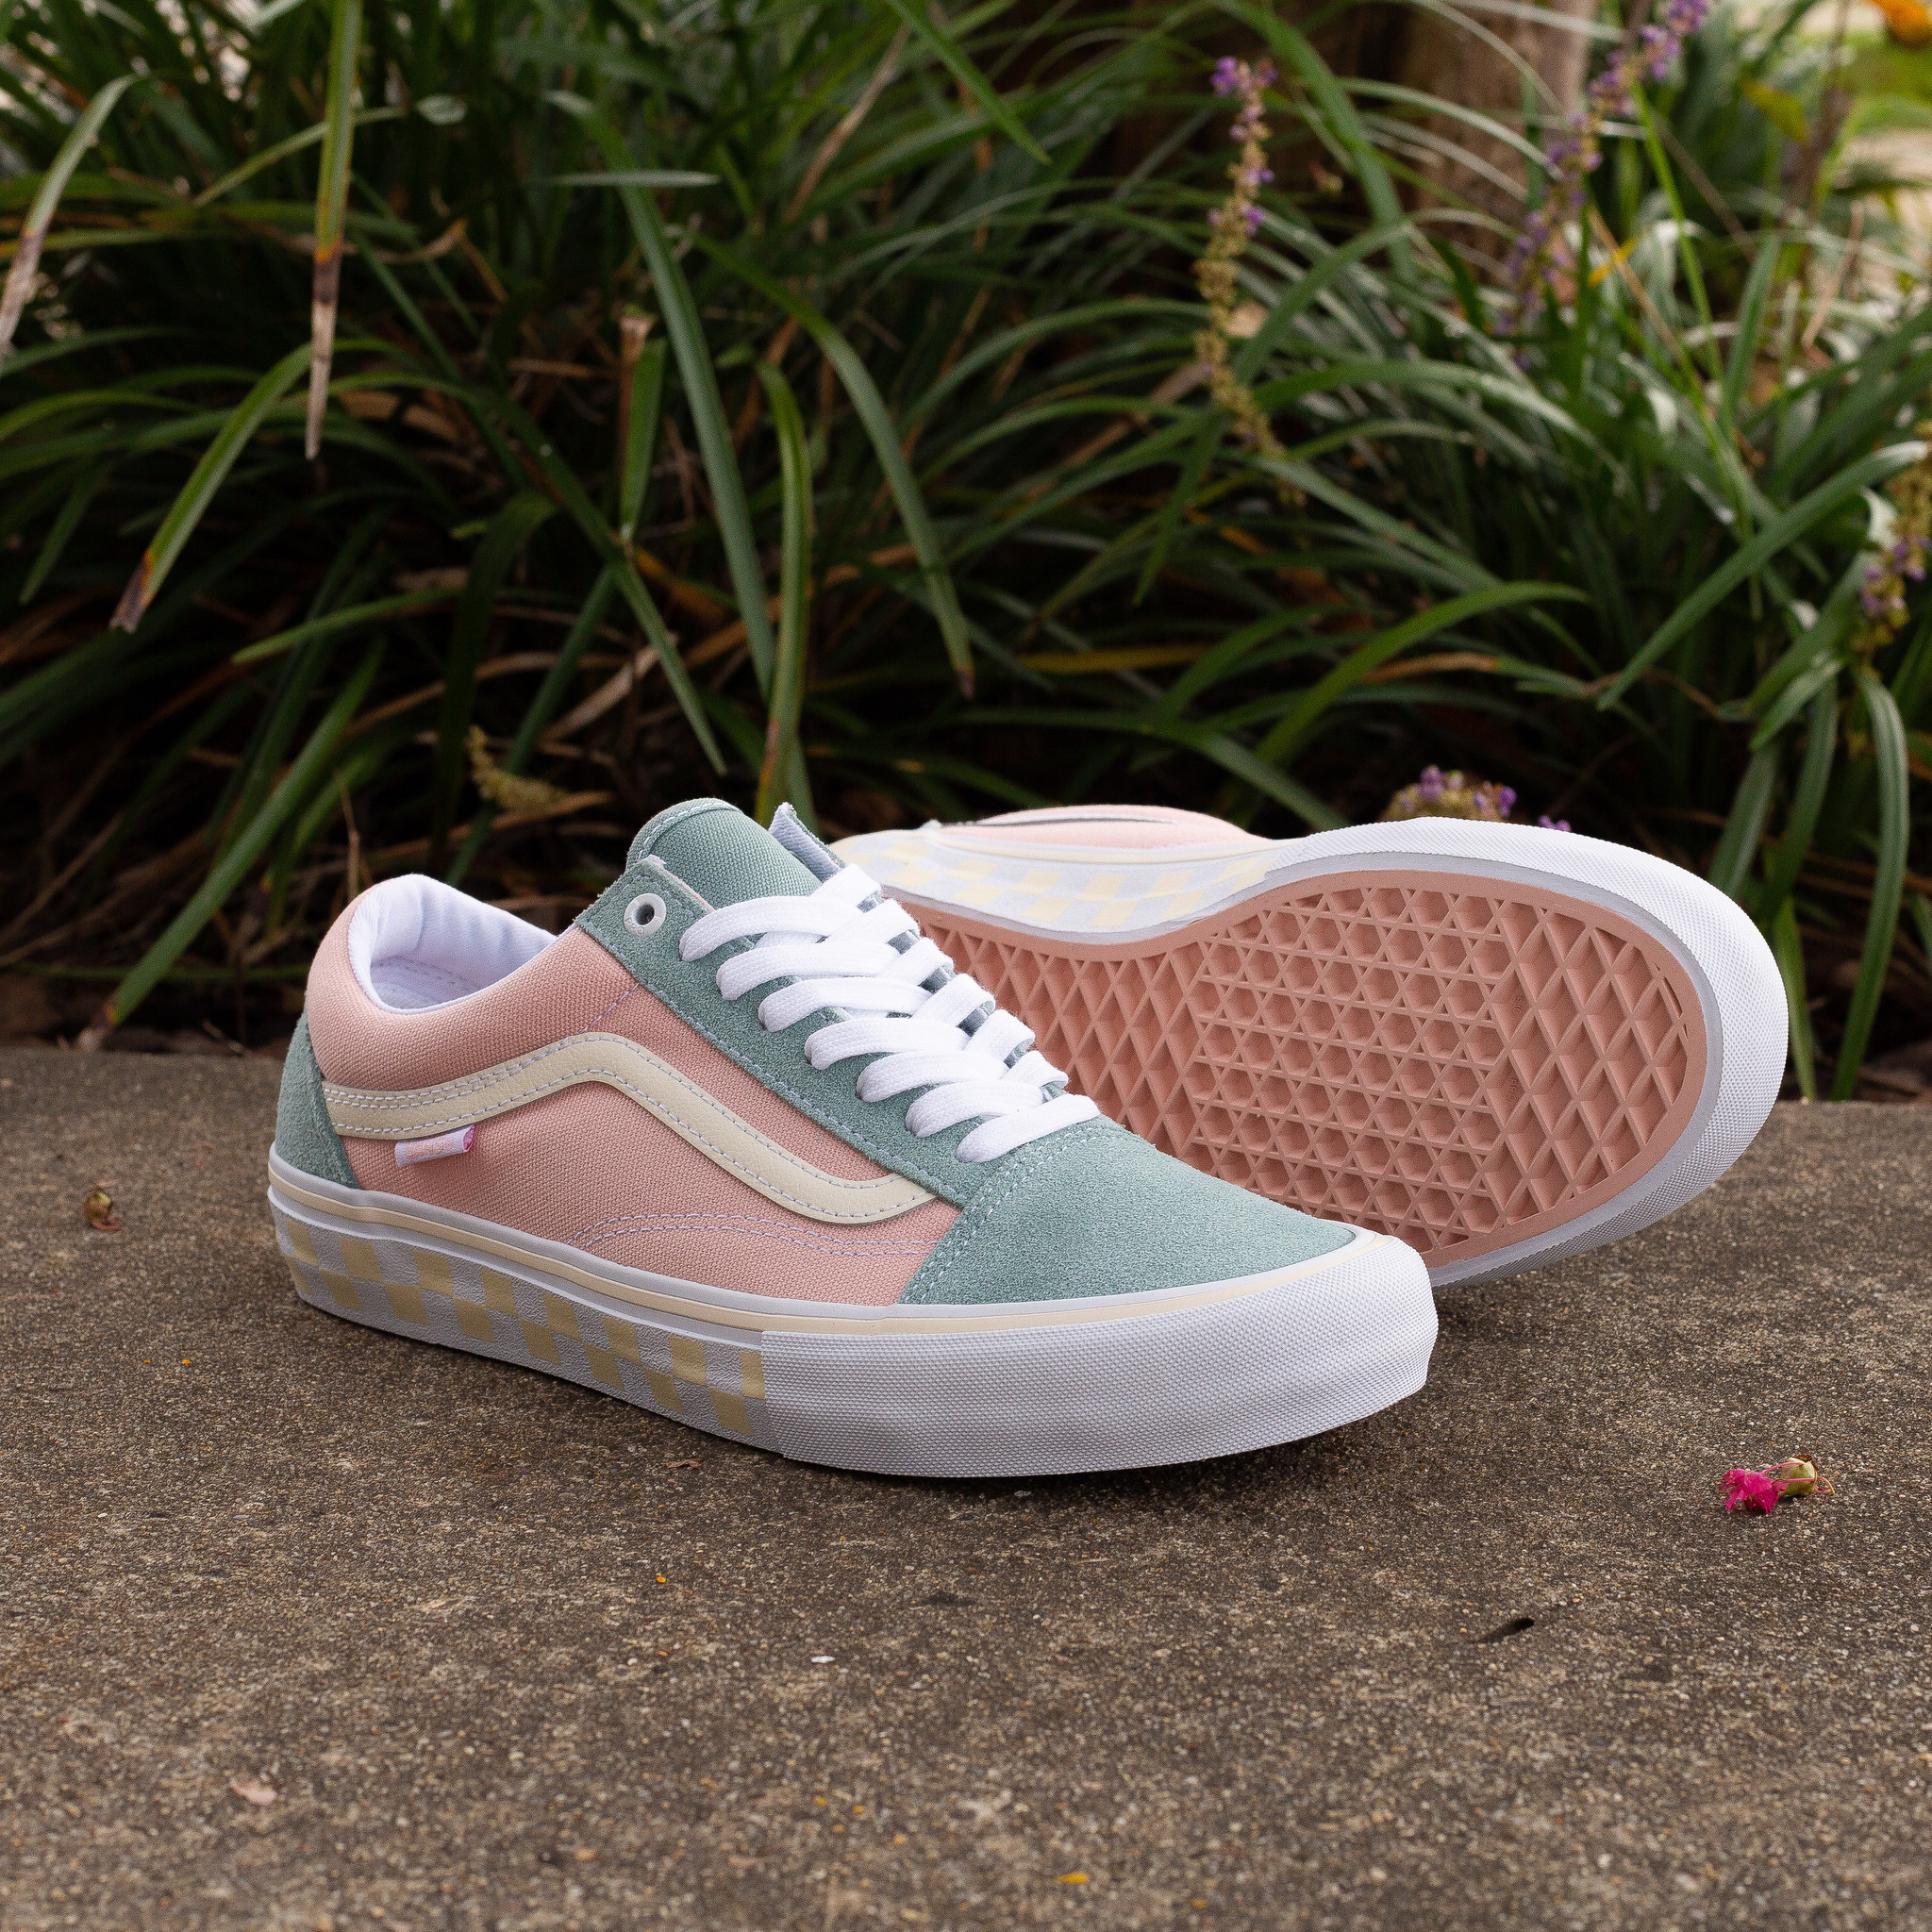 Vans Vans Old Skool Pro Peach/Washout